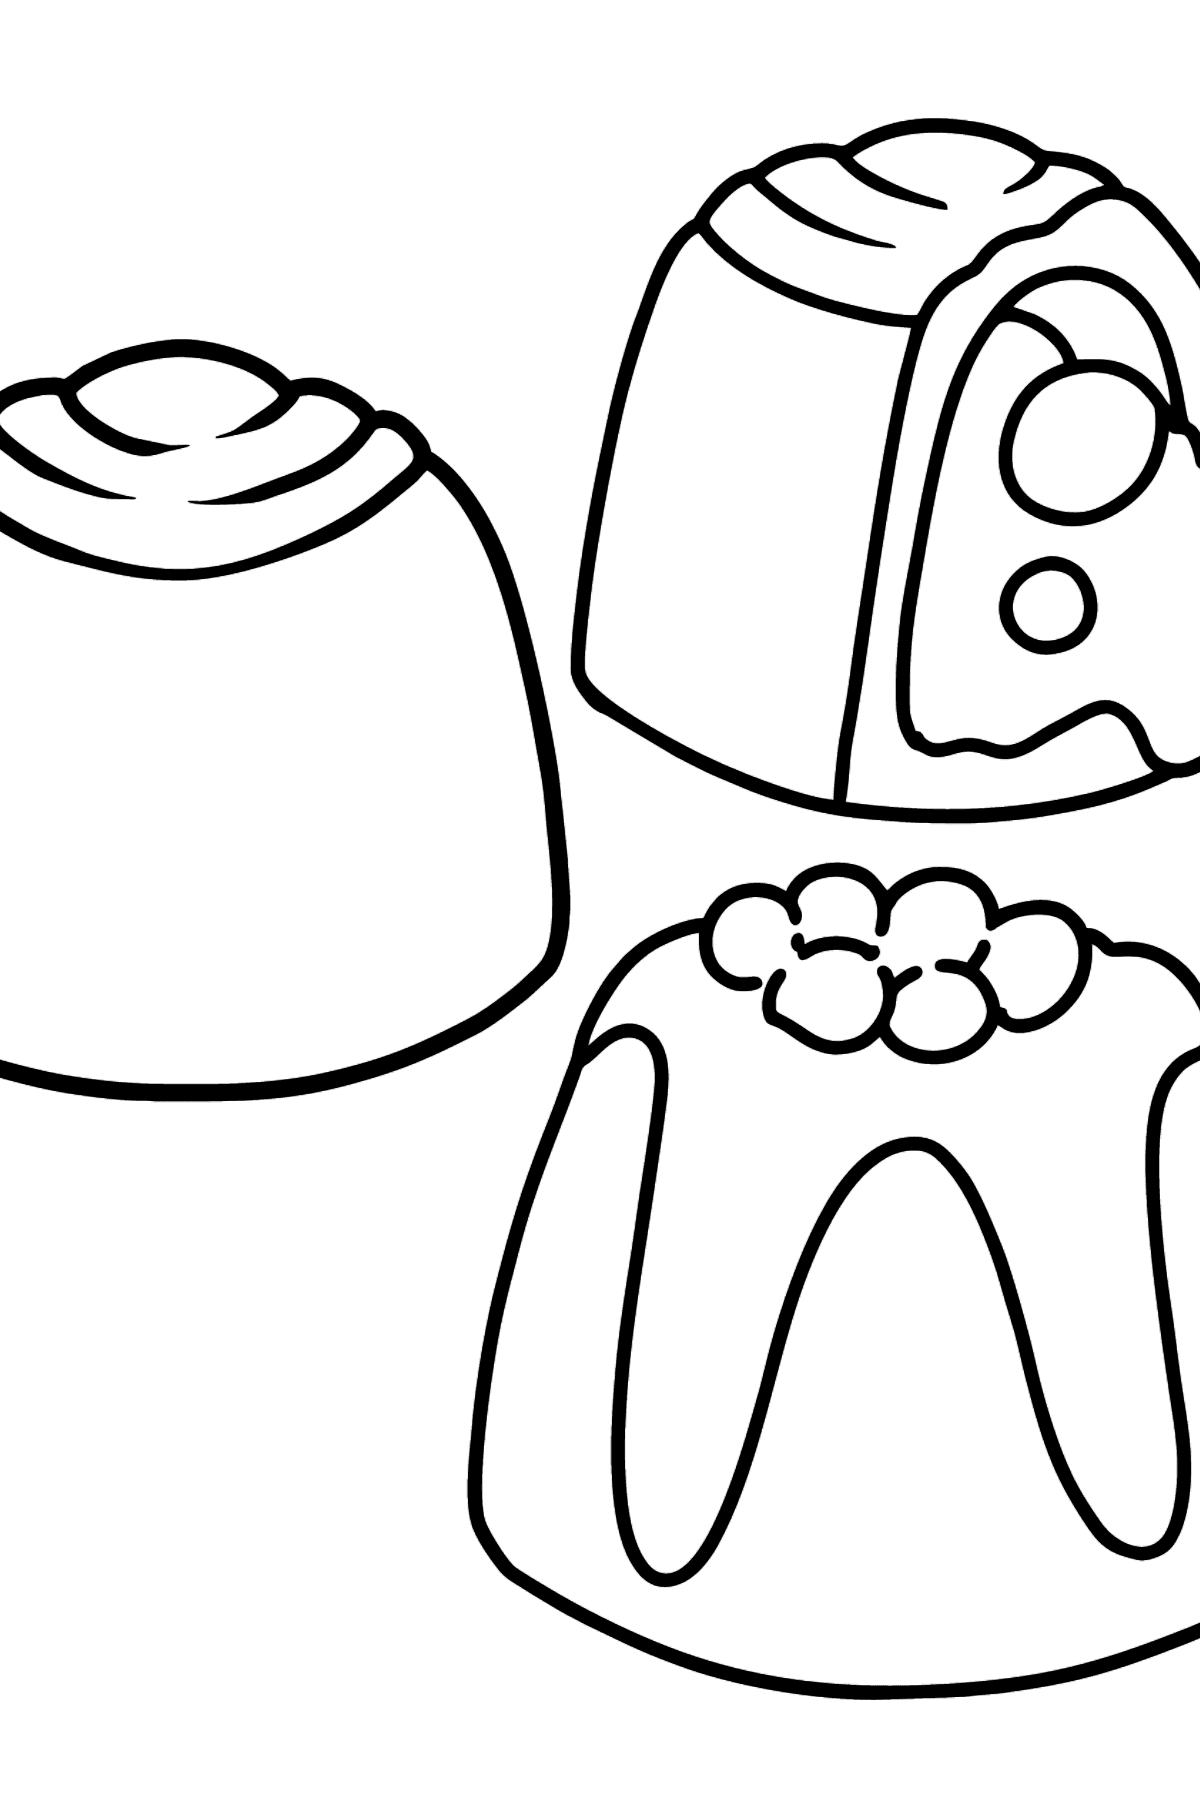 Chocolate Candy coloring page - Coloring Pages for Kids